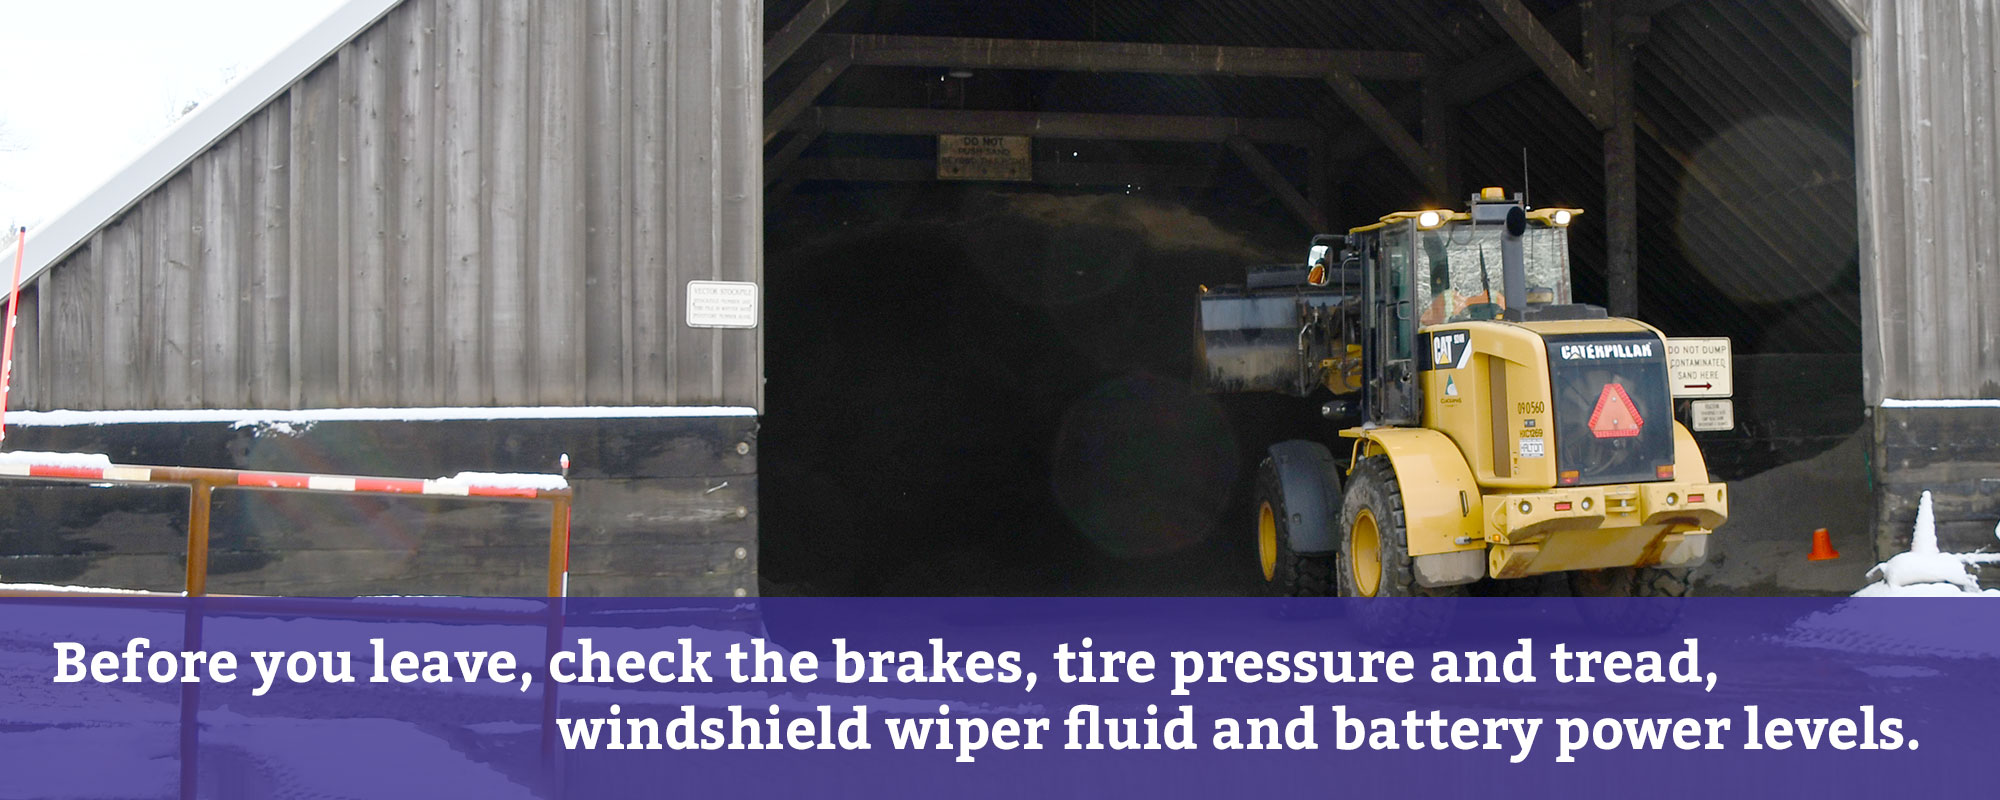 Before you leave, check the brakes, tire pressure and tread, windshield wiper fluid and battery power levels.